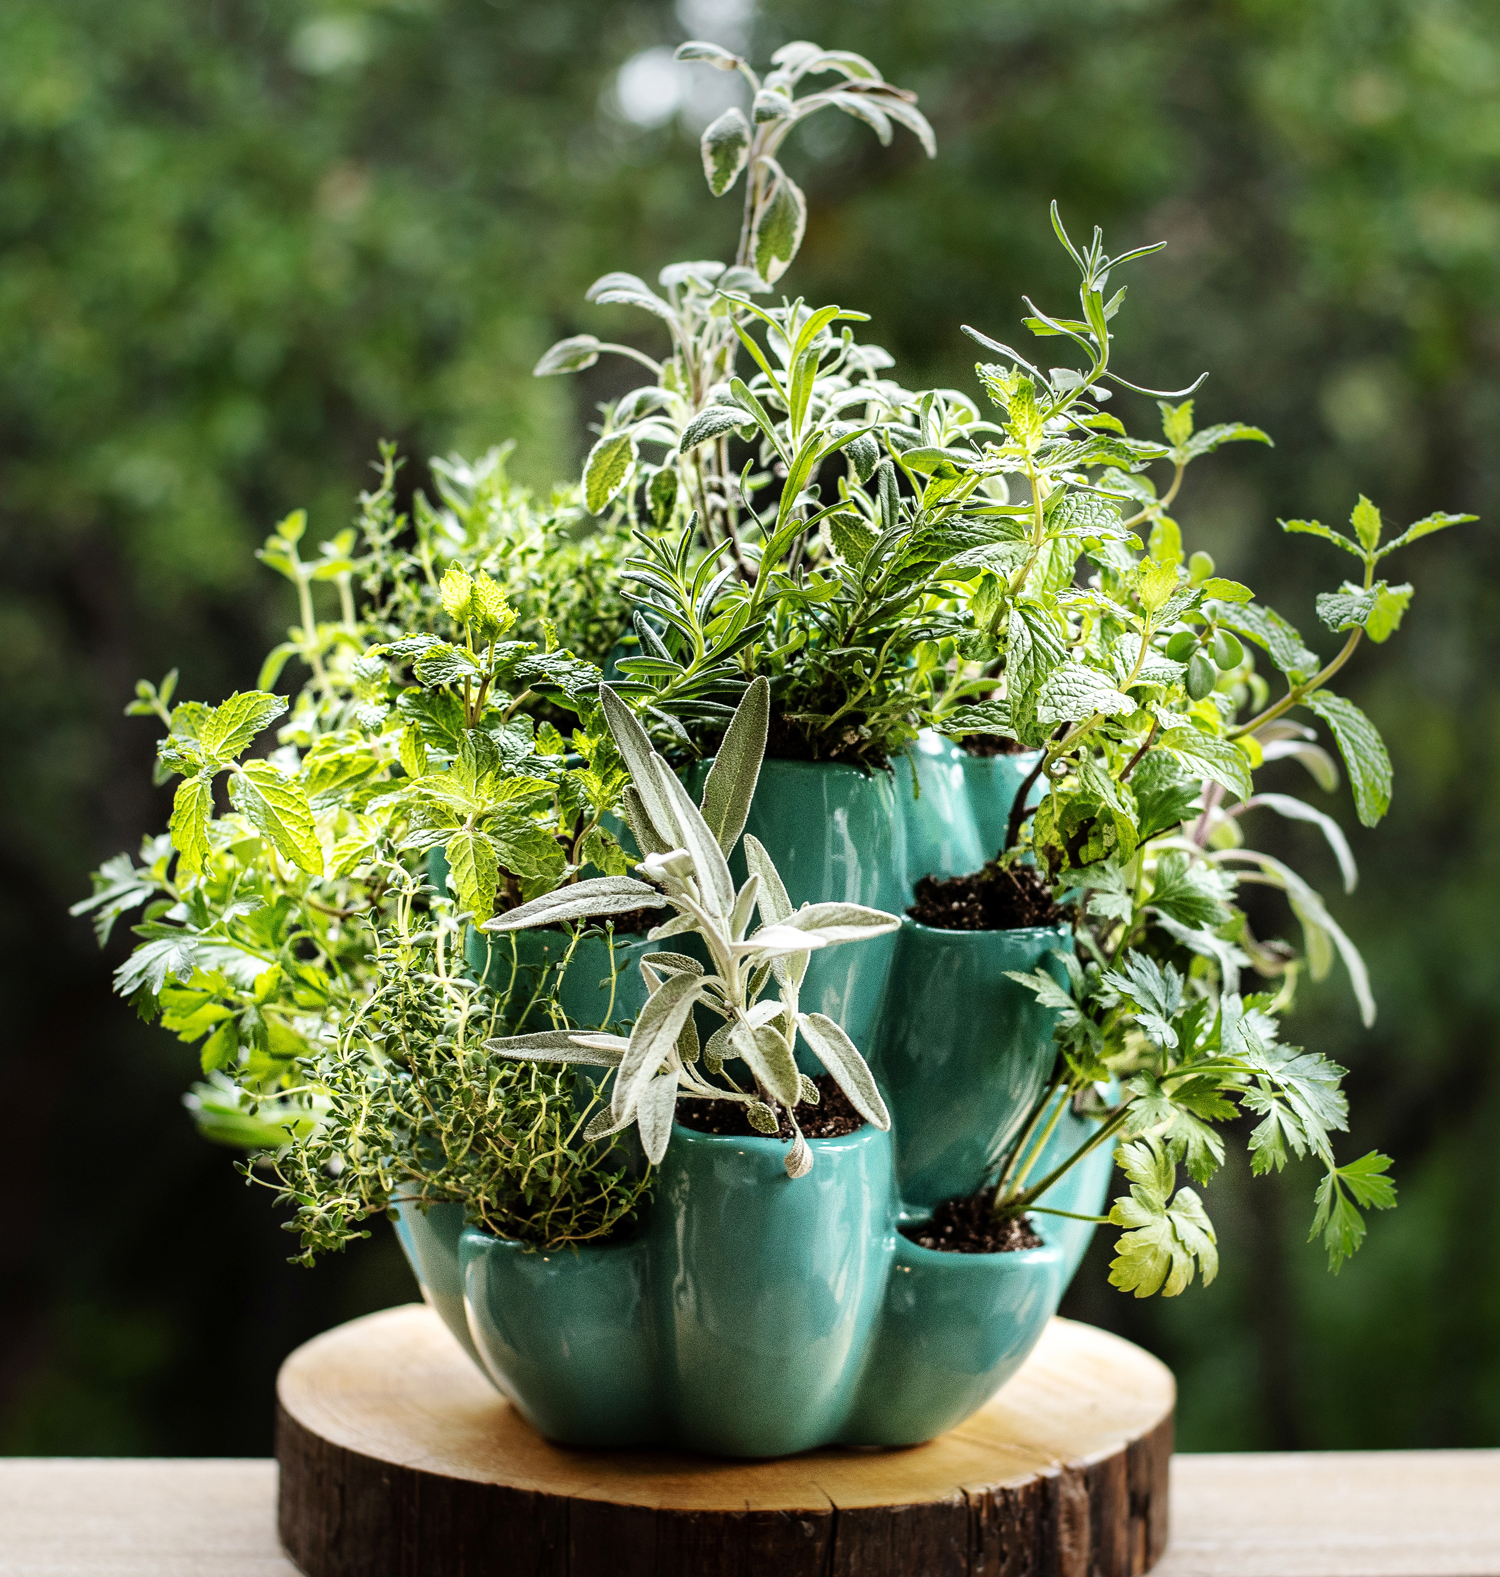 The Cacti and Succulent Pot can be filled with succulents, herbs or flowers.